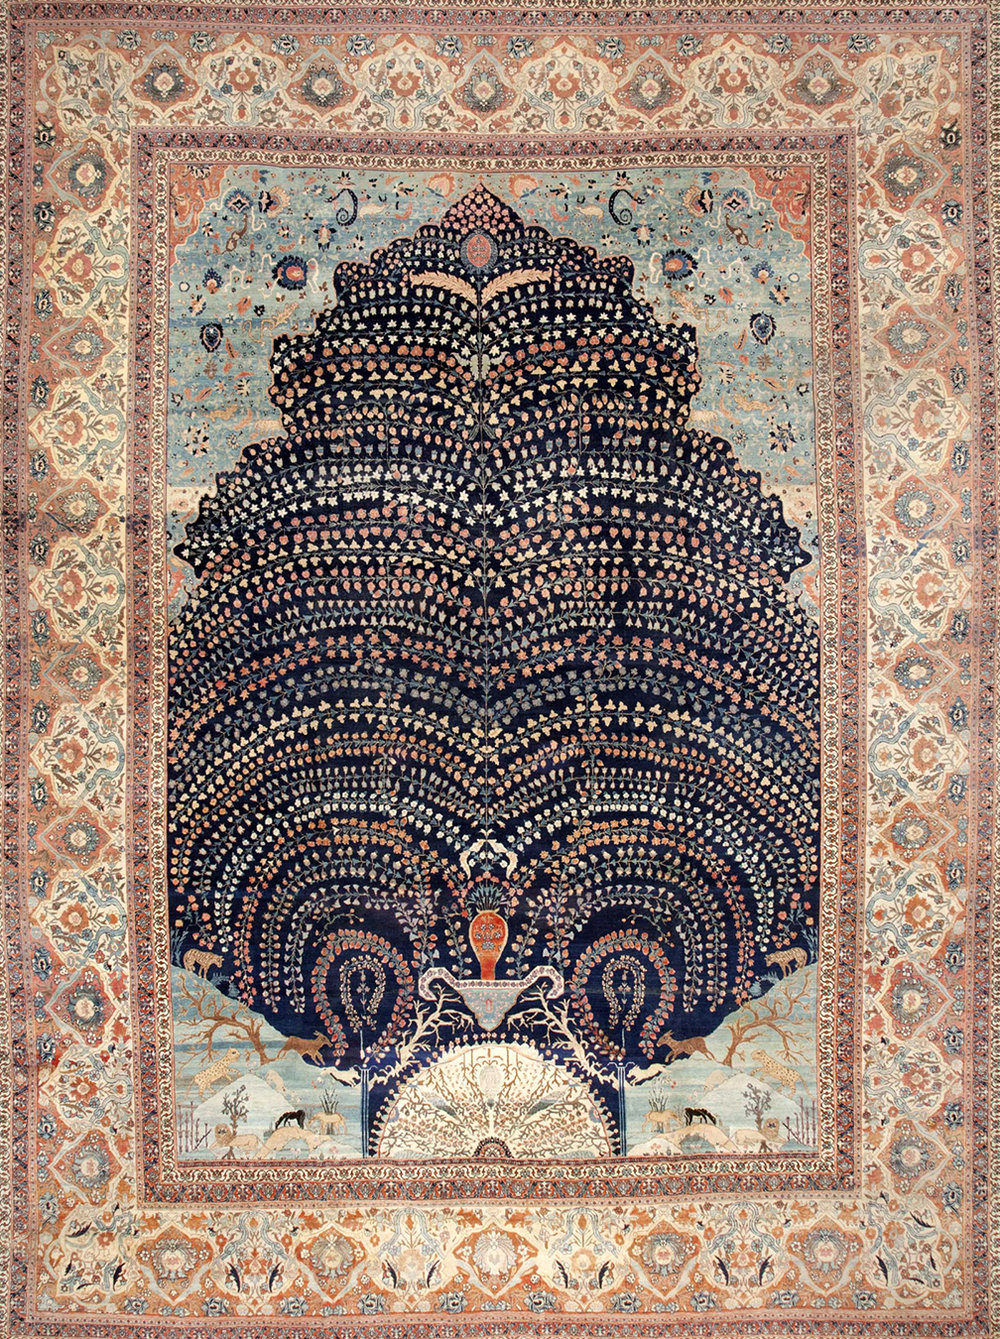 """The Tree of Life and the vase are recurring motifs in Islamic rugs (""""Vase"""" or """"Kerman"""" rugs are actually their own subset of Persian rugs)."""